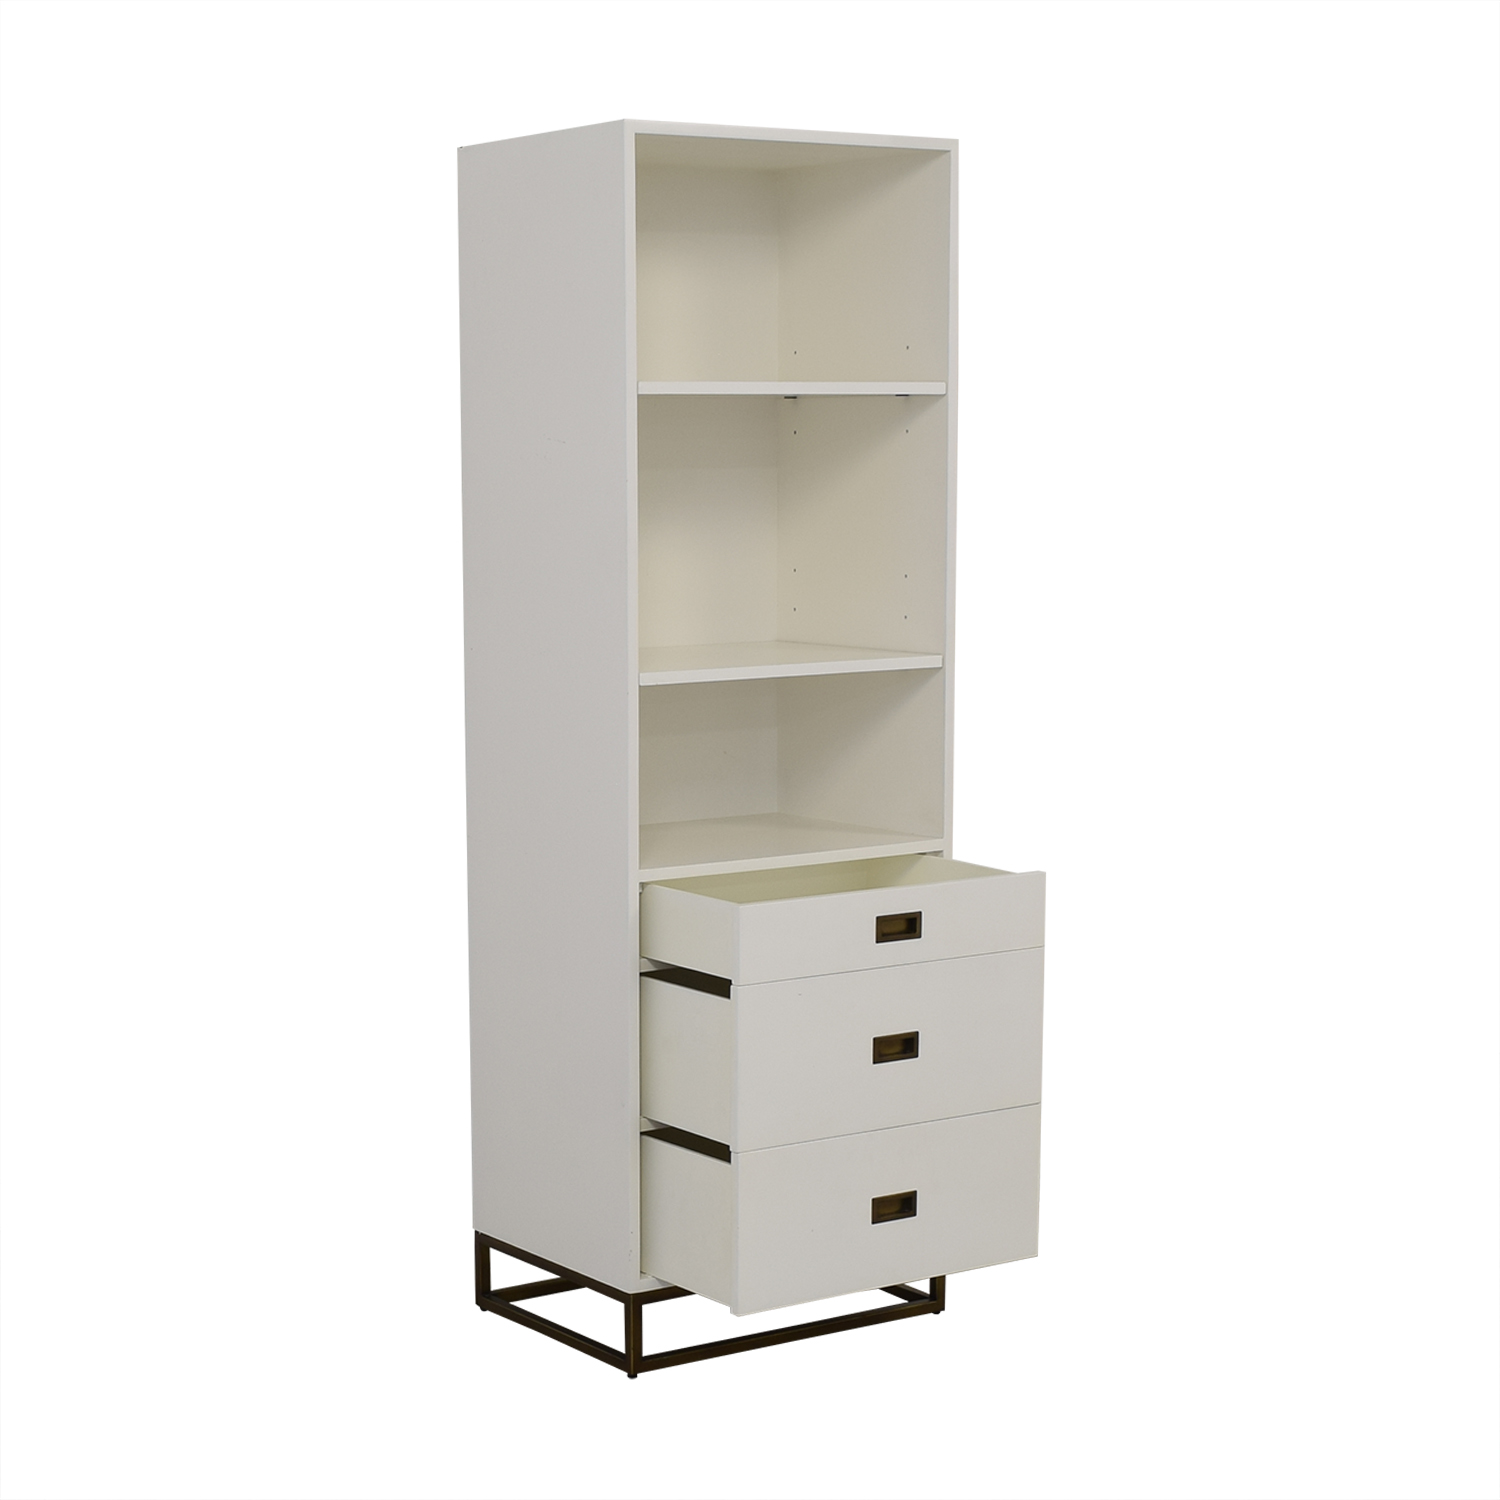 Restoration Hardware Restoration Hardware Avalon Bookcase Tower white